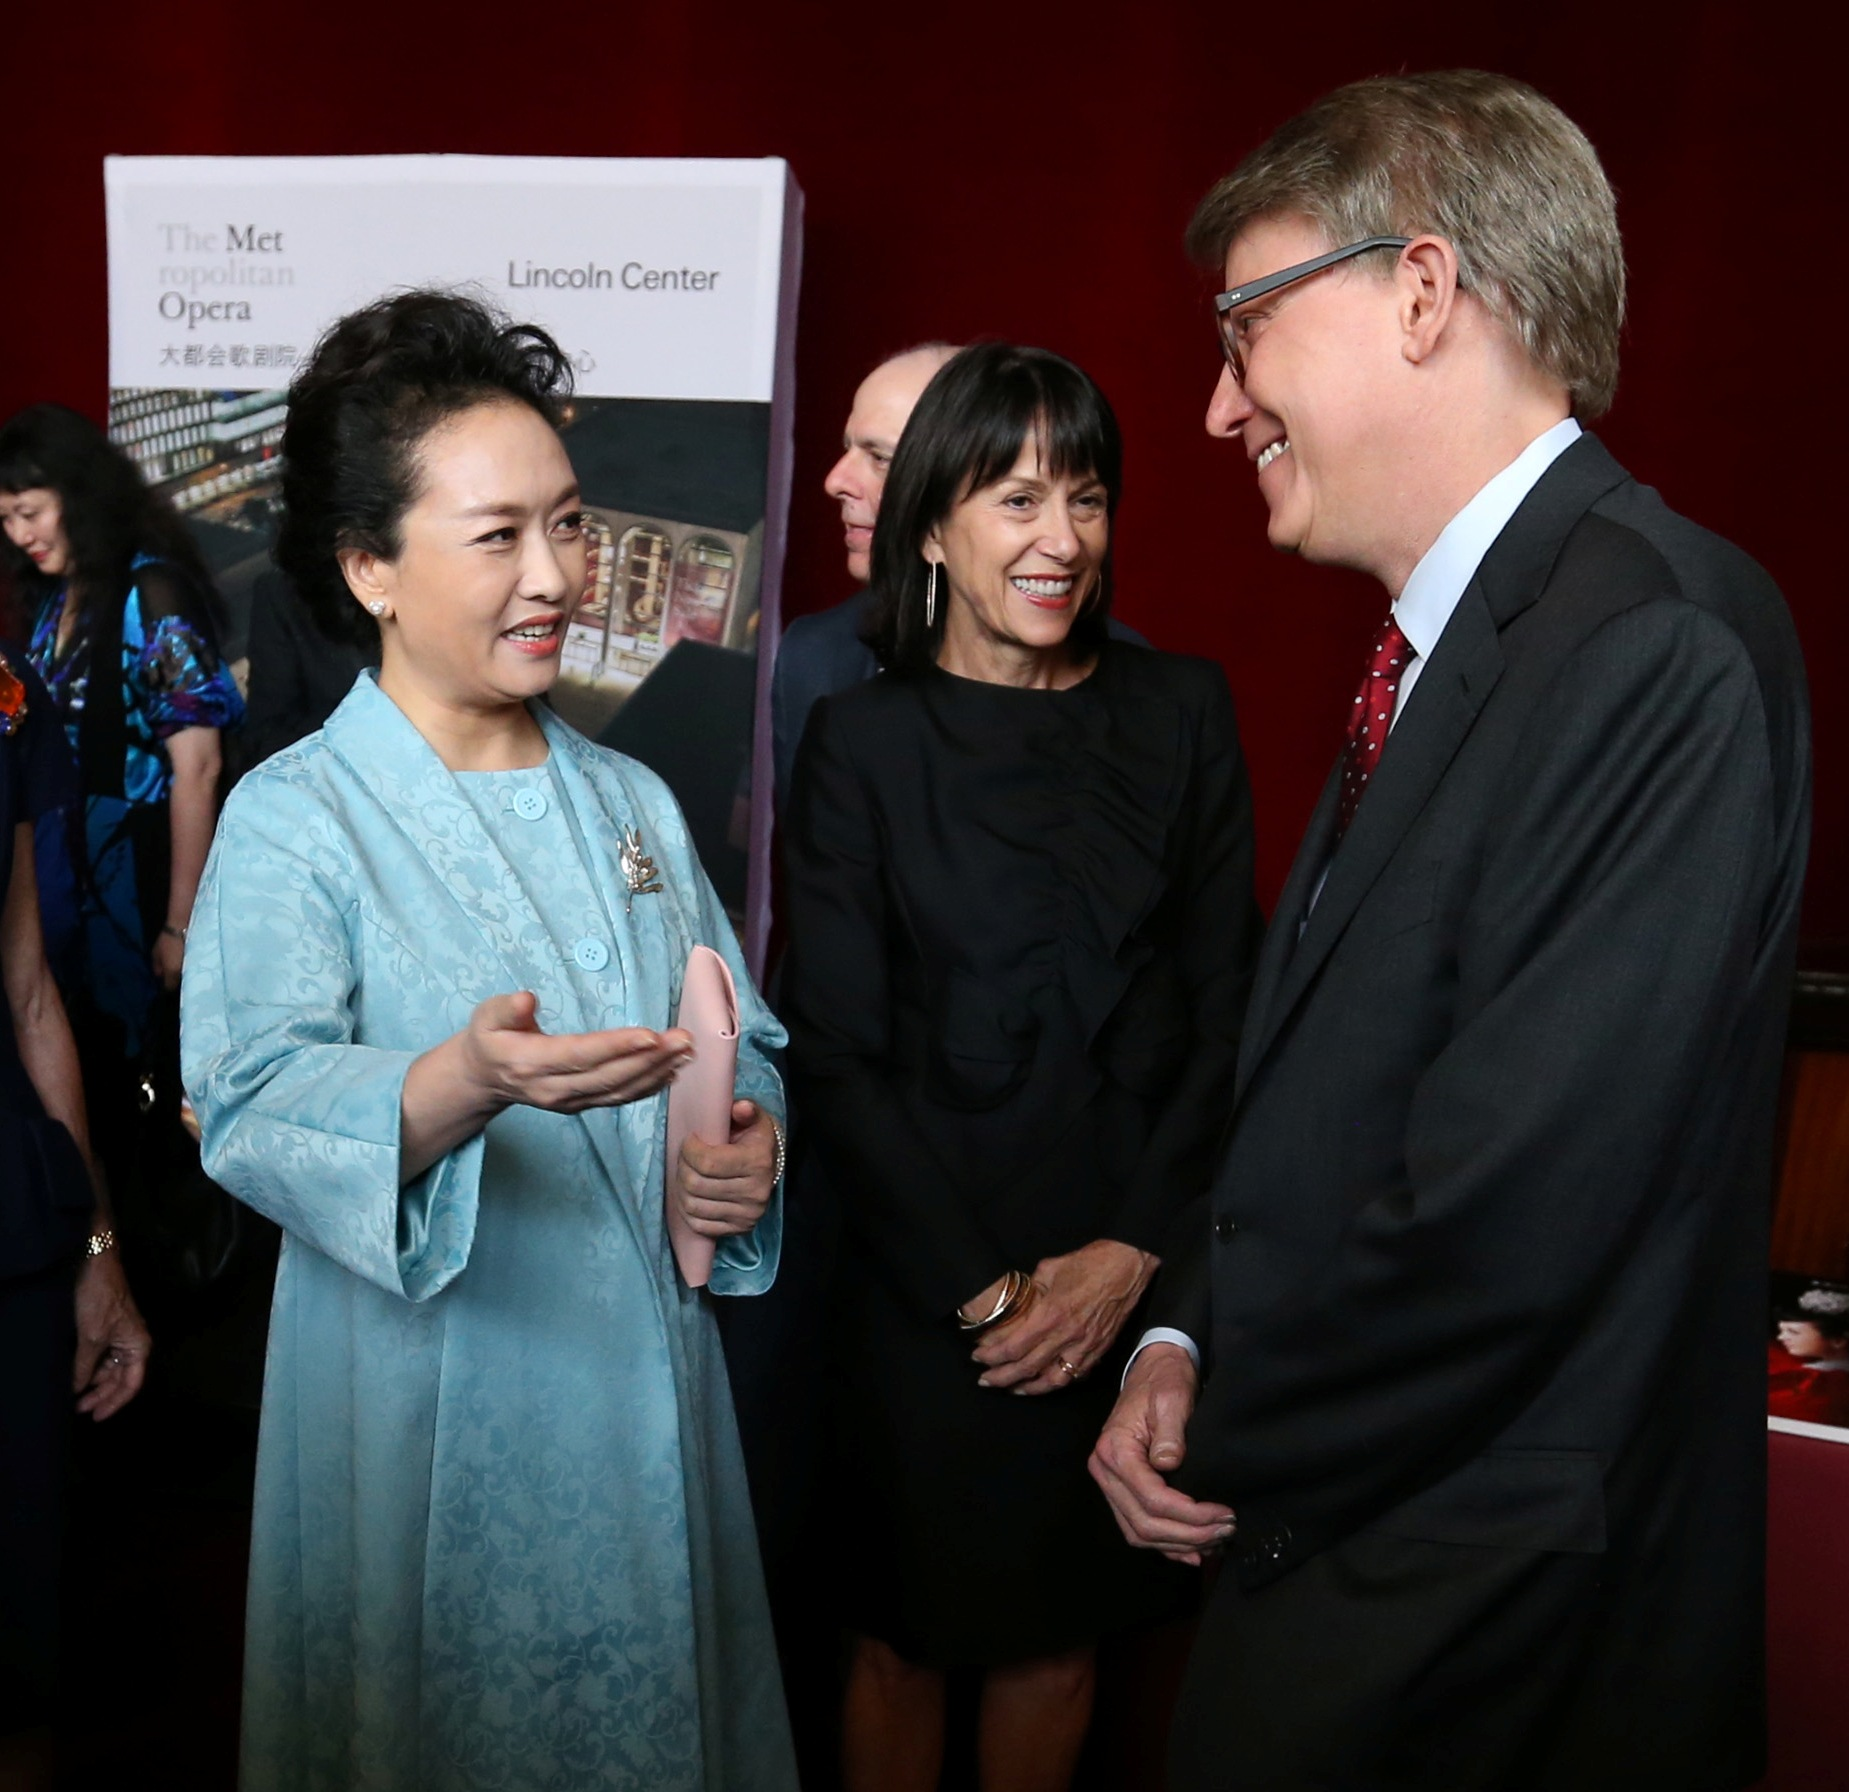 Bob photo with First Lady of China October 2015